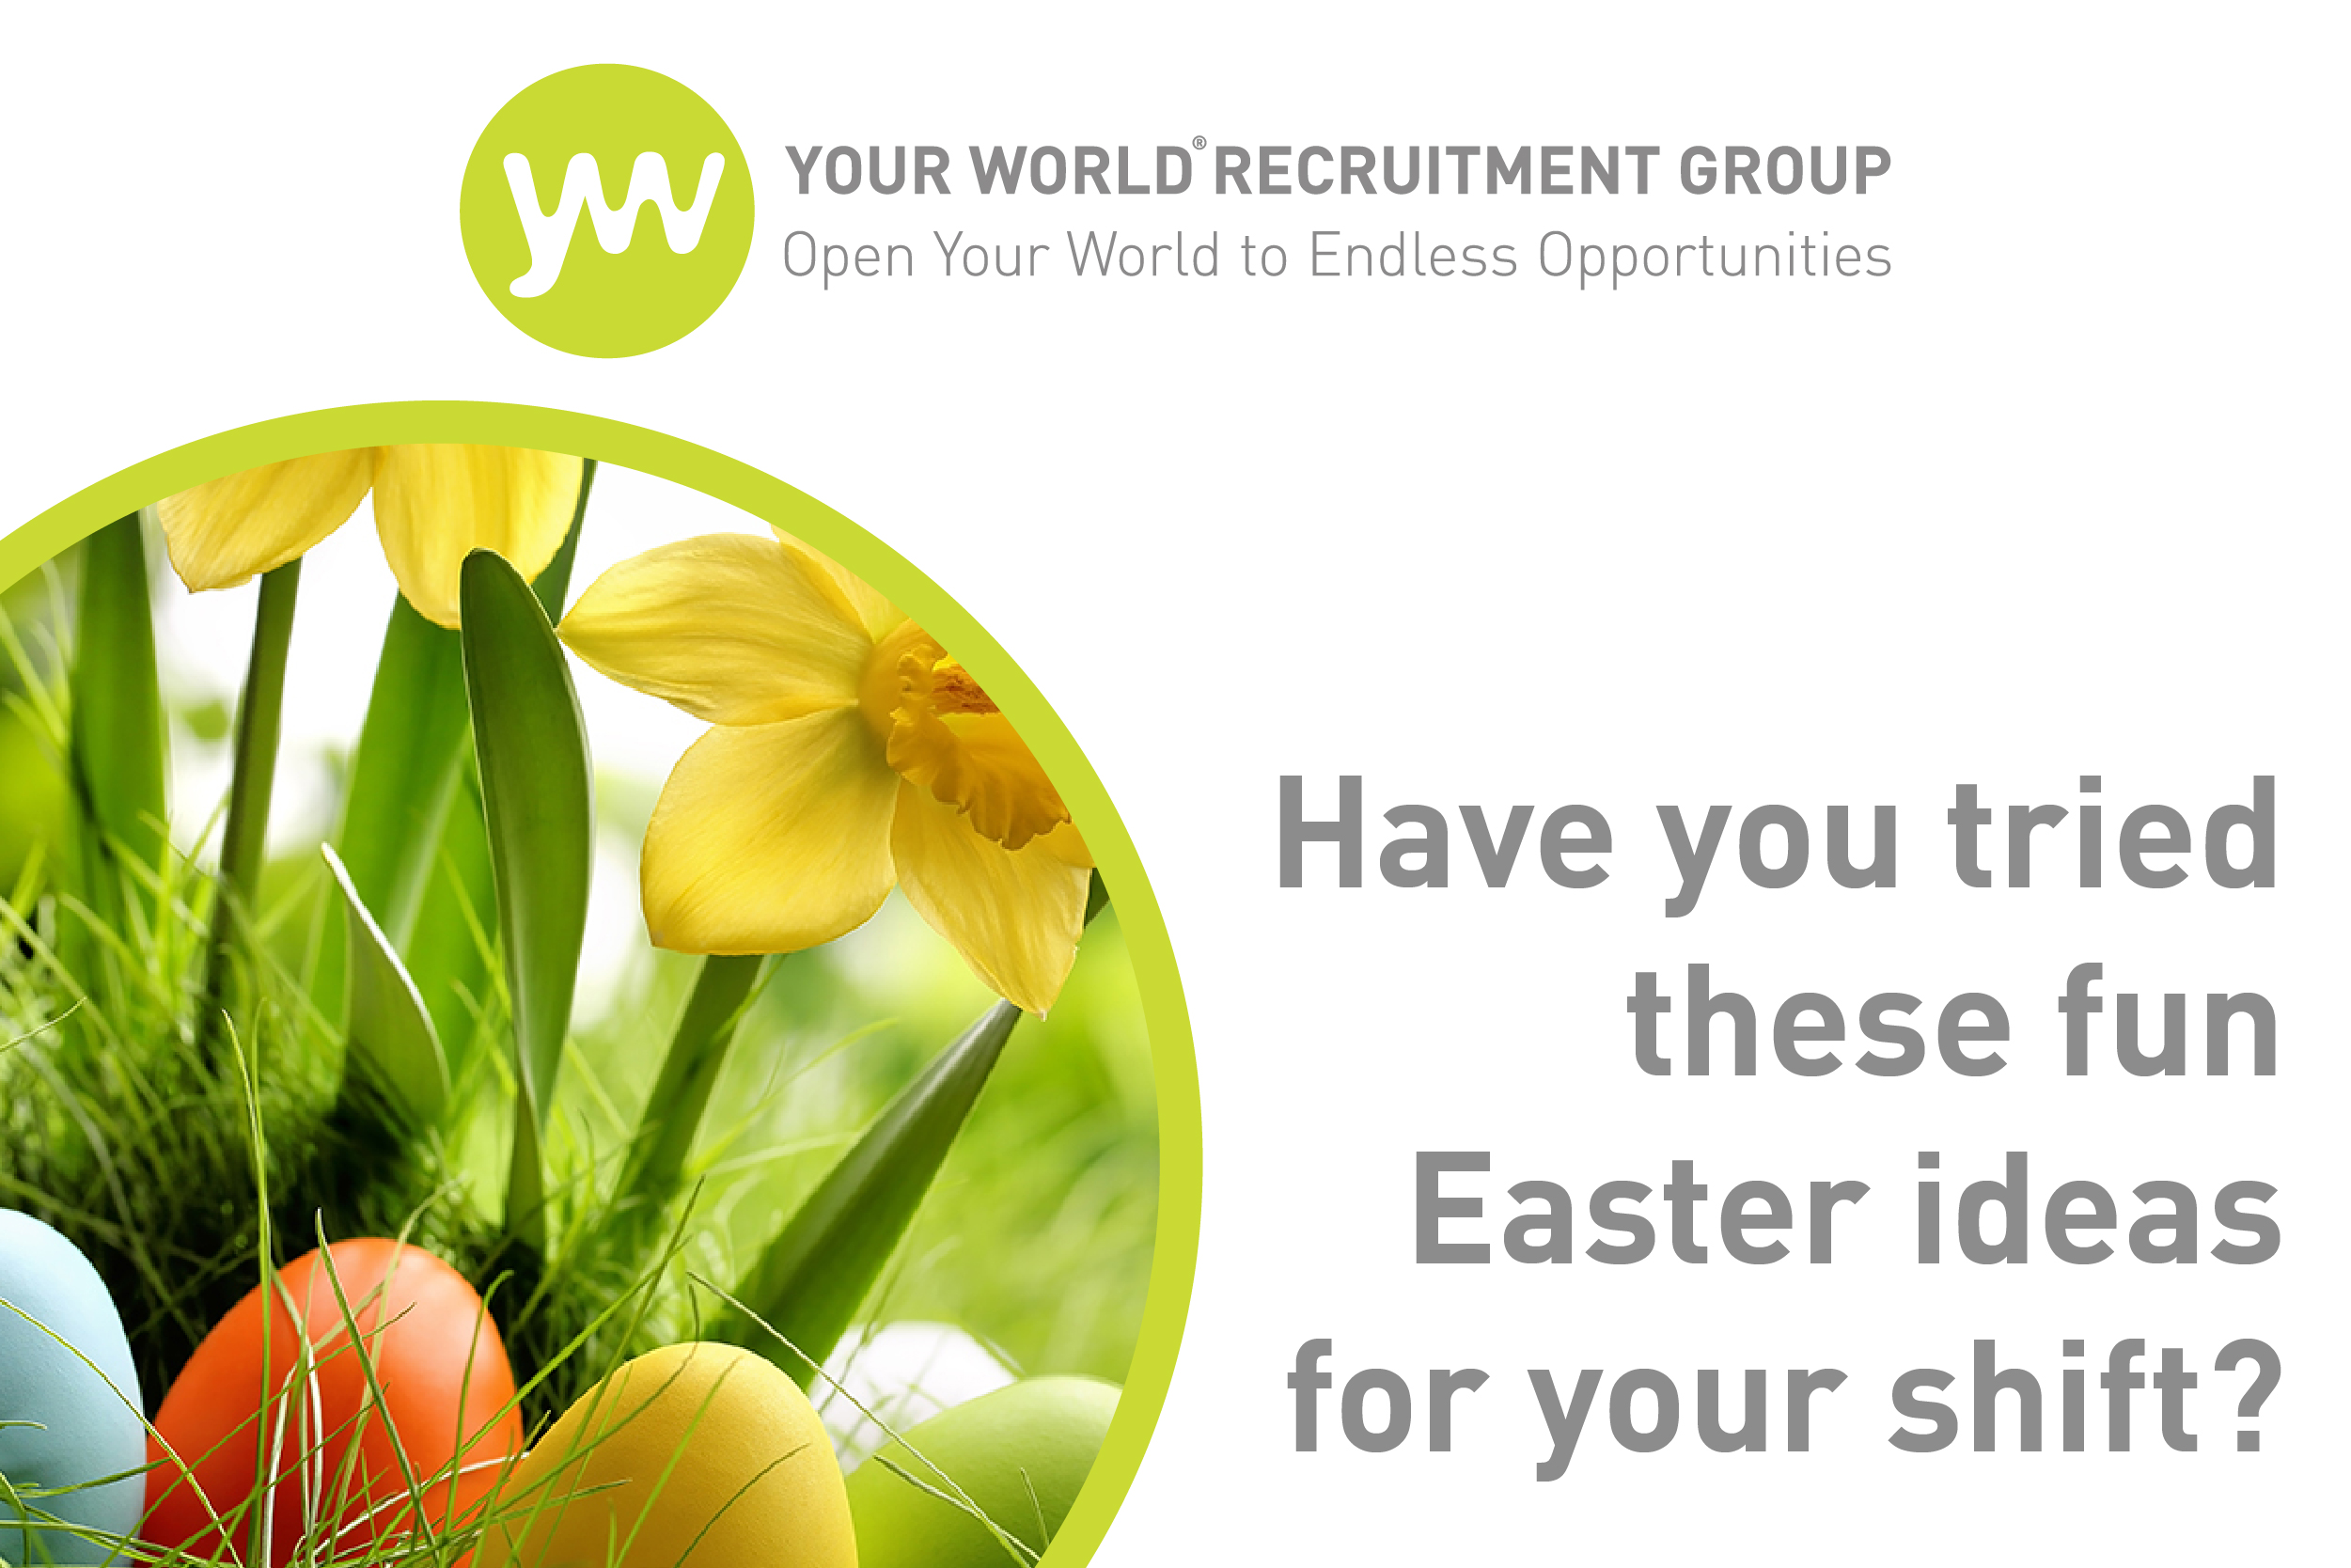 Have You Tried These Fun Easter Ideas for Your Shift?